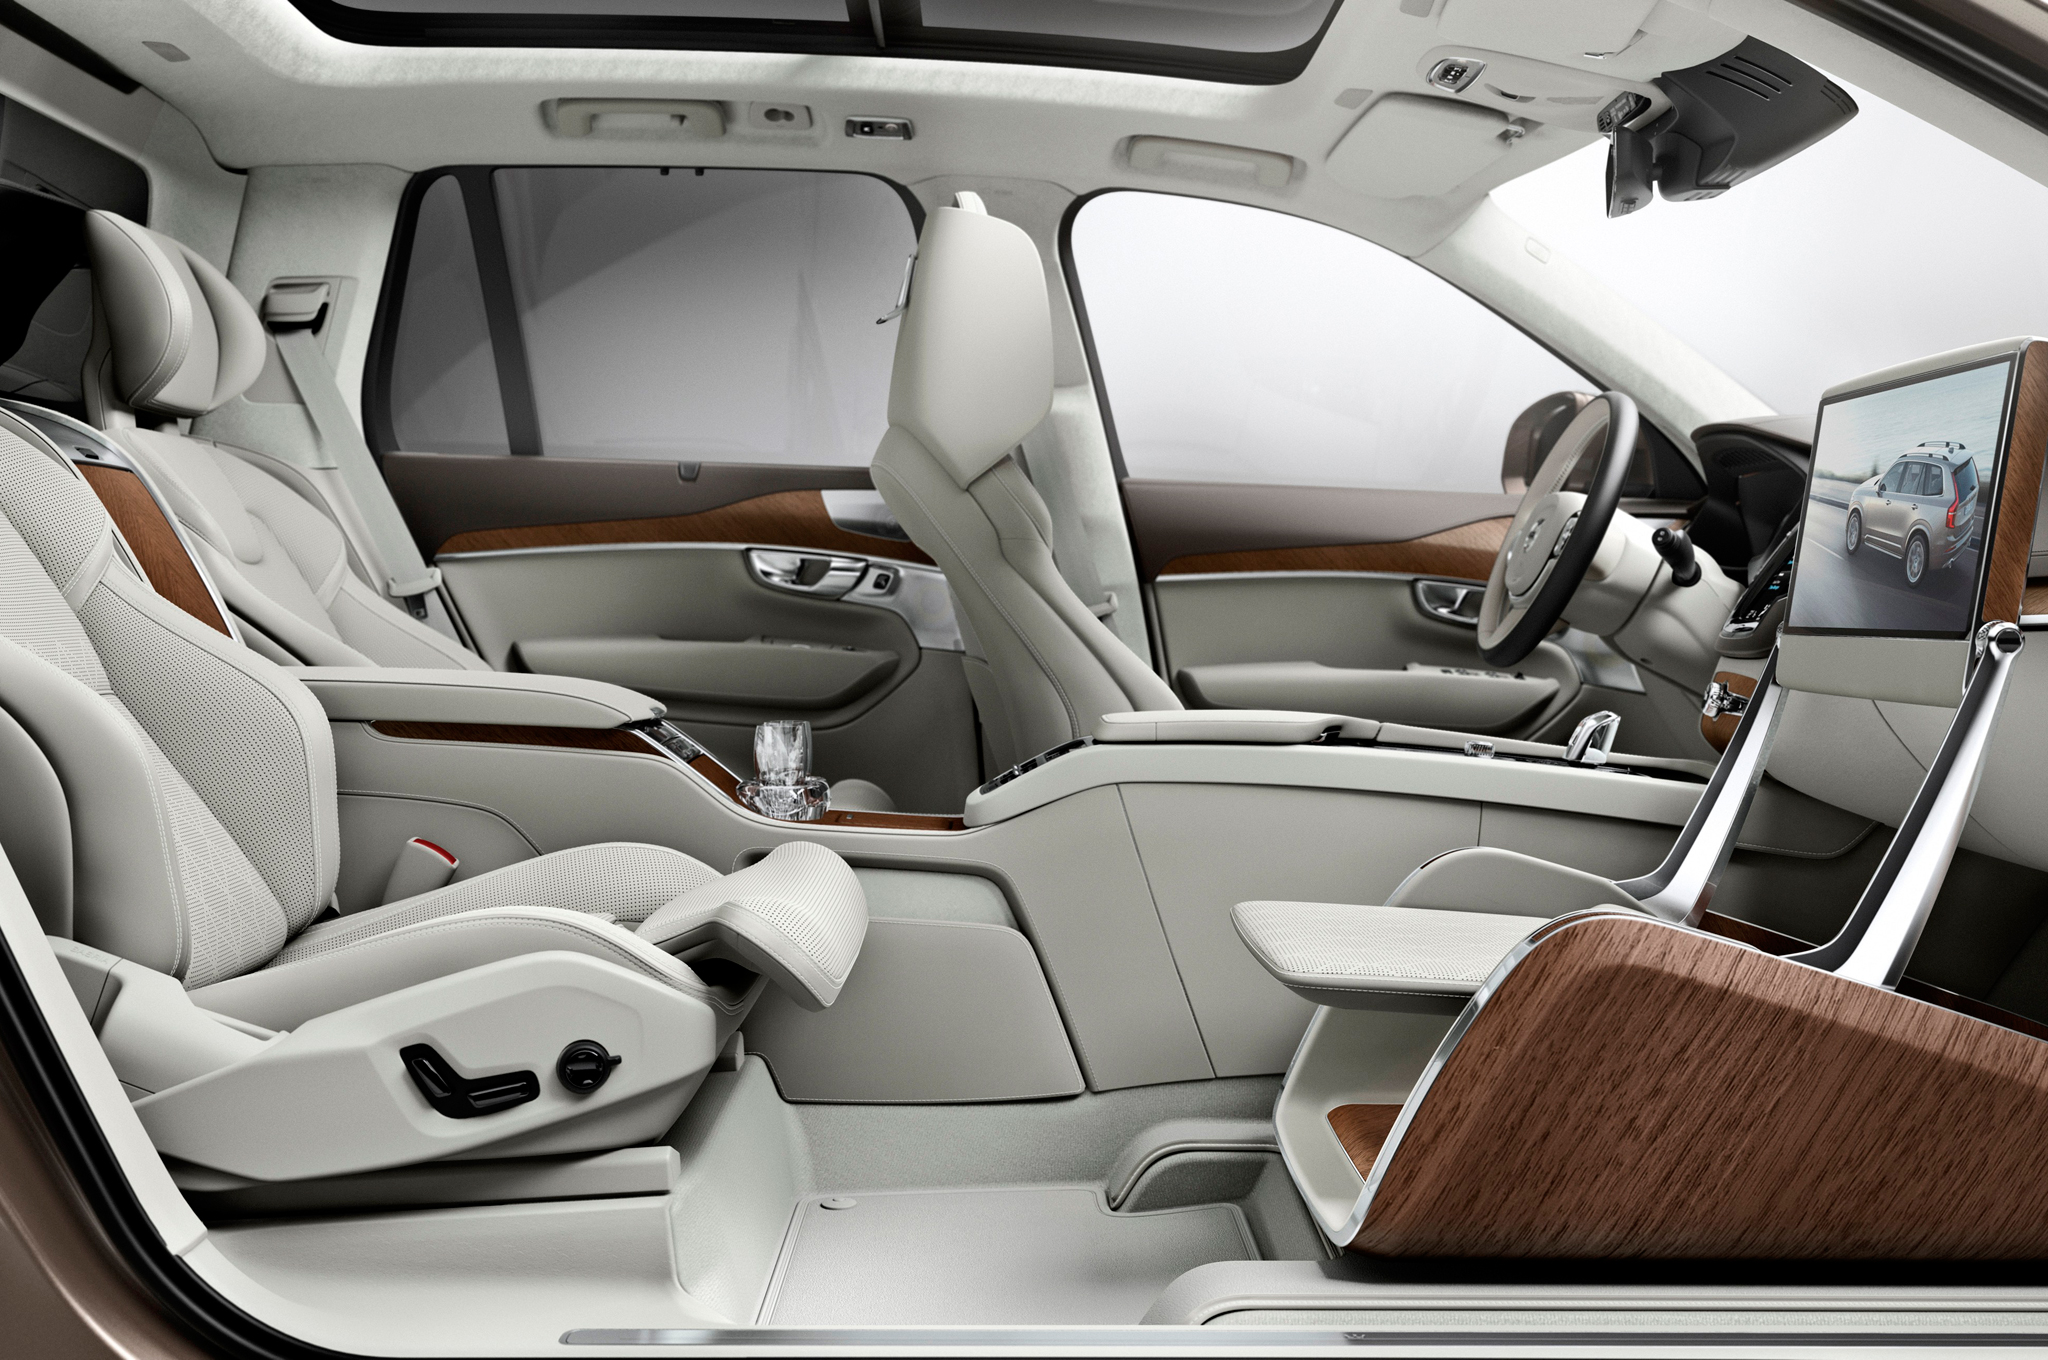 Volvo XC90 Back Seat Gets VIP Treatment With Lounge Console Concept - Motor Trend